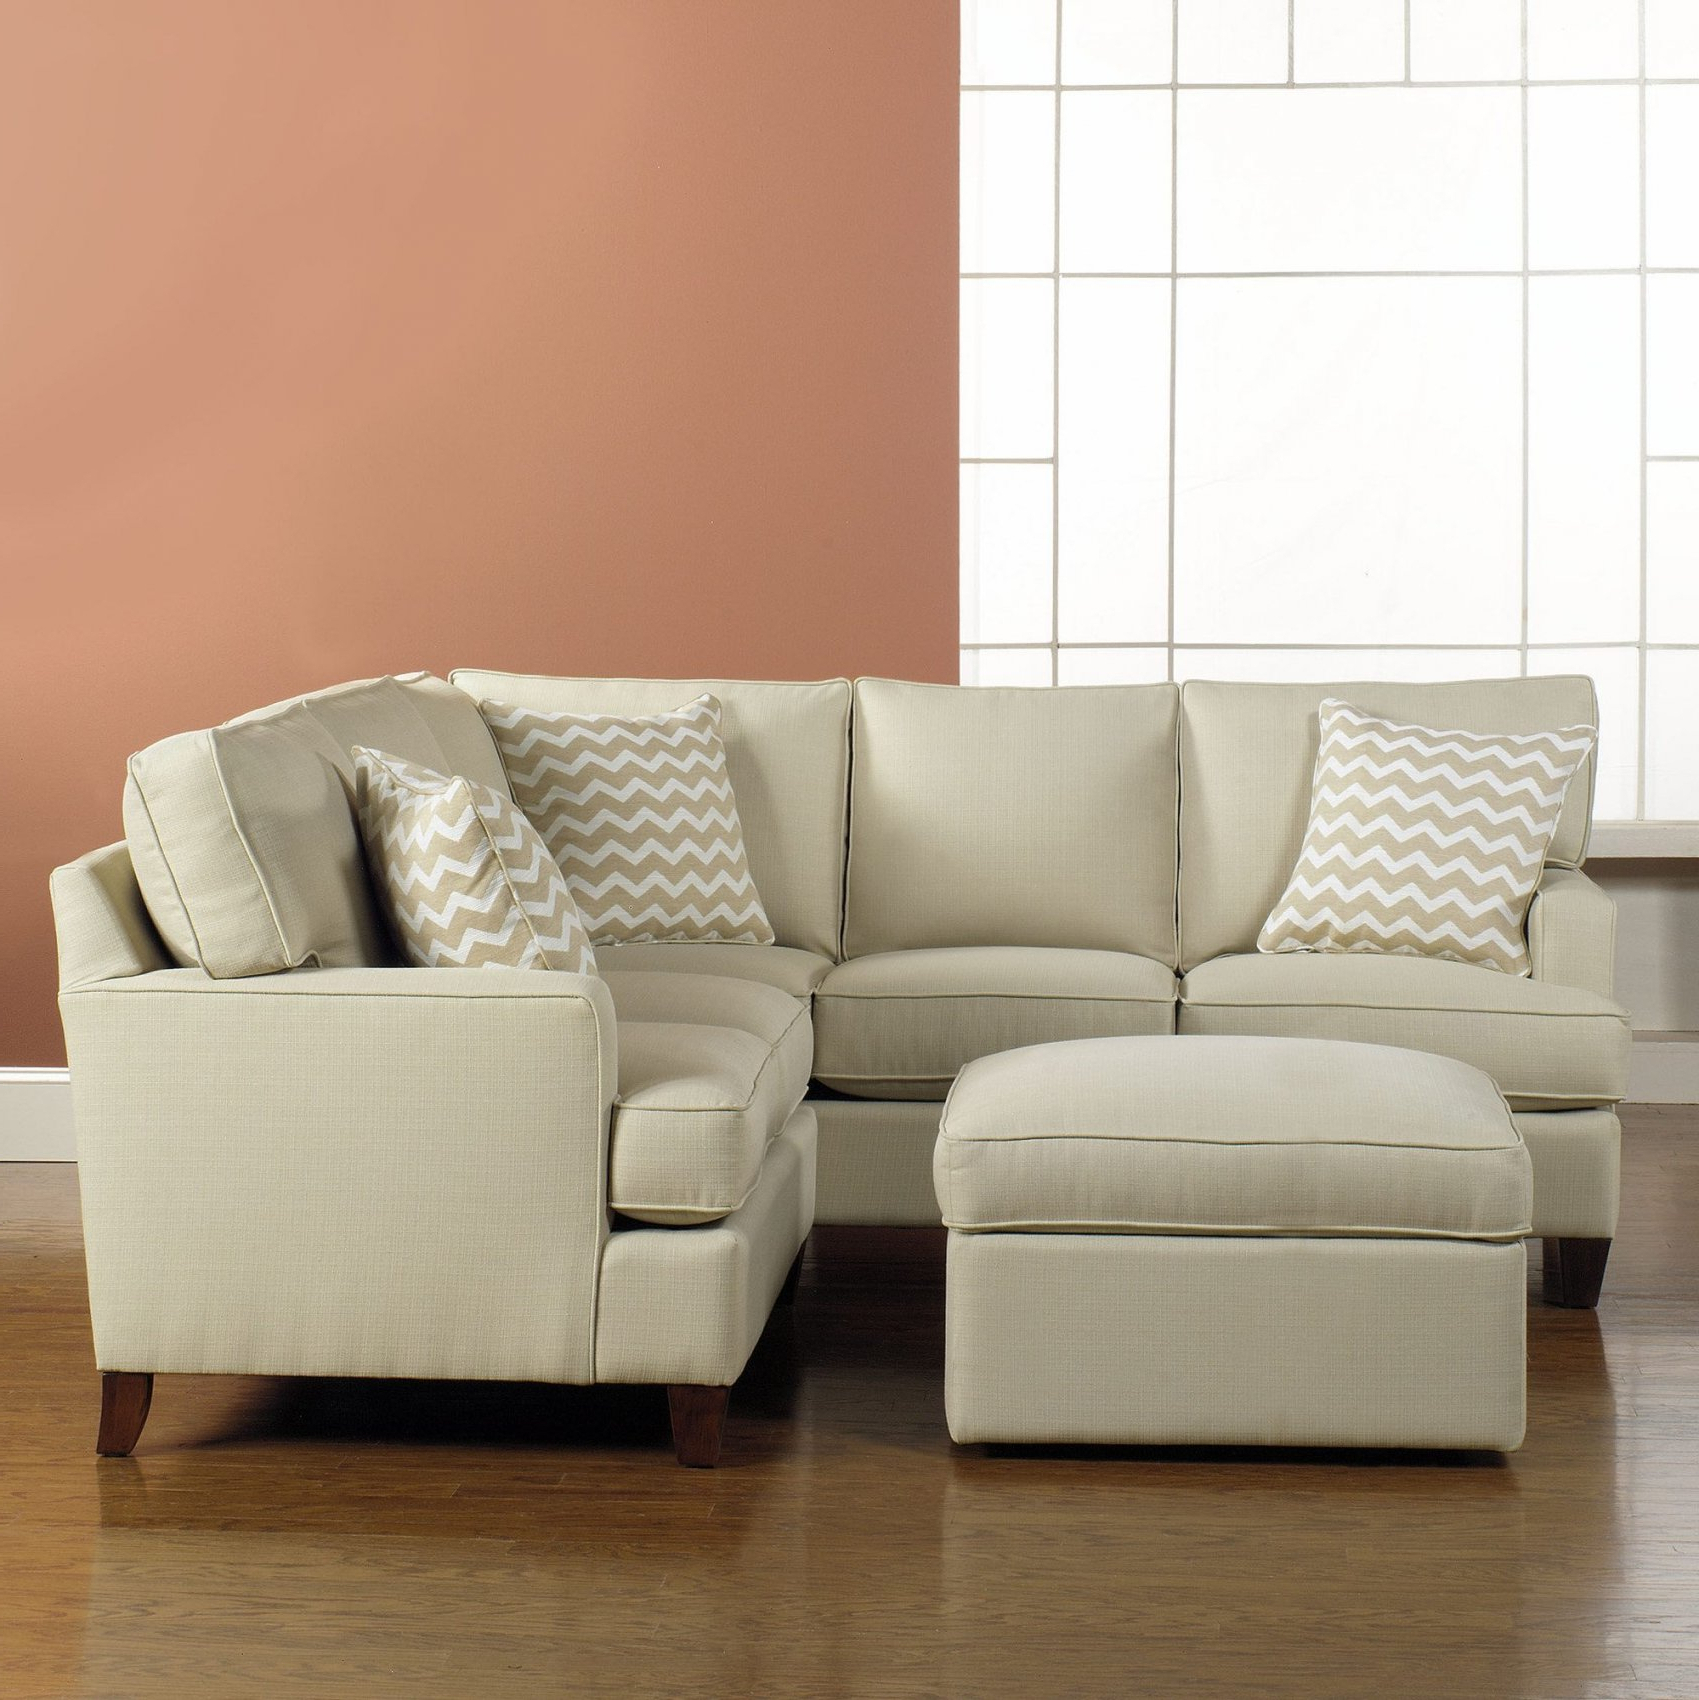 2018 Avery 2 Piece Sectionals With Laf Armless Chaise For Seating – Small Sectional Couch – Pickndecor (Gallery 11 of 20)